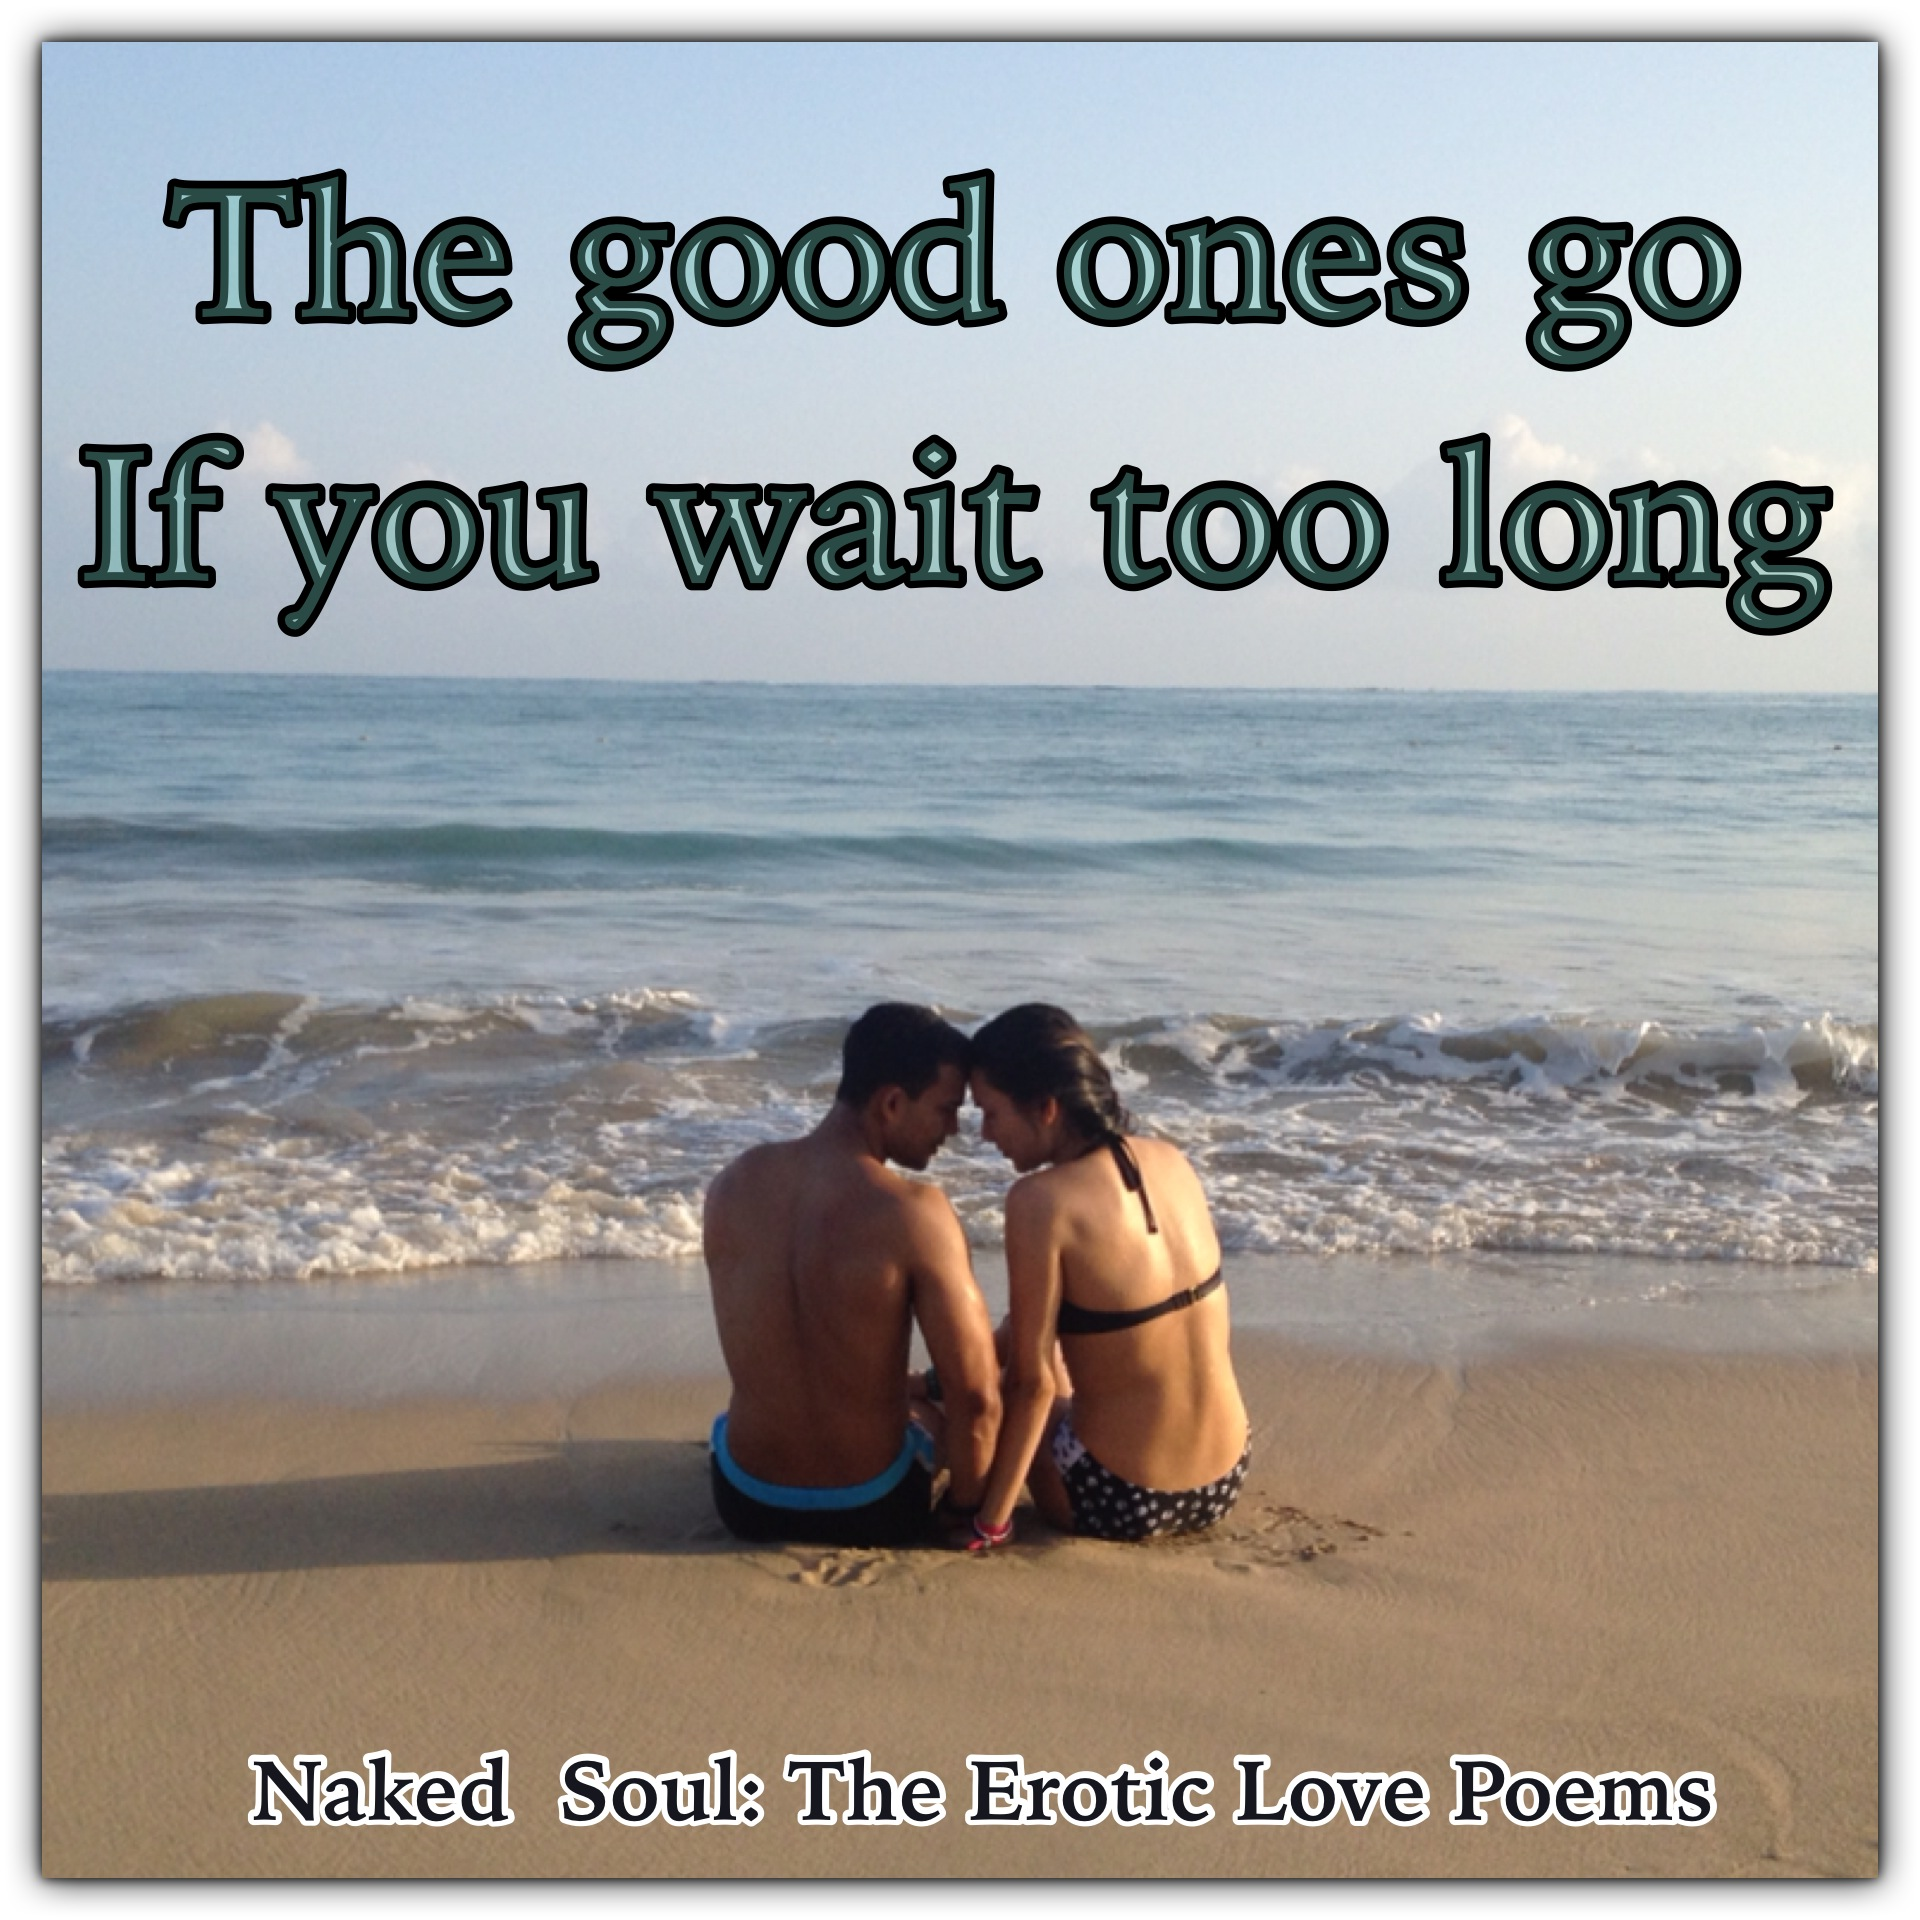 The good ones go if you wait too long